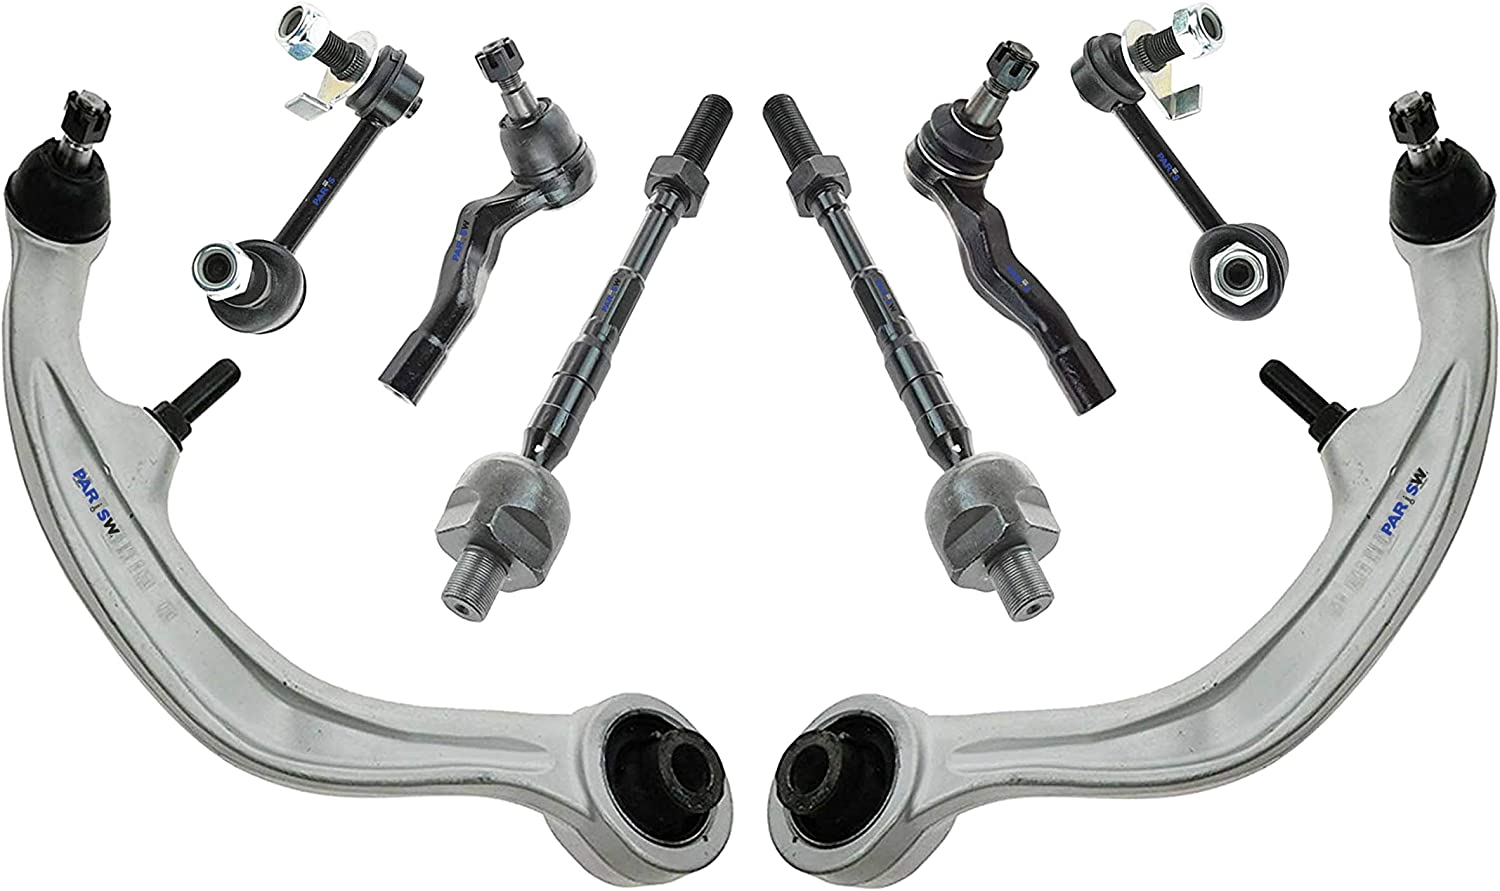 Ball Joint For 2003-2008 Infiniti G35 Front Lower Left /& Right Side Set of 2